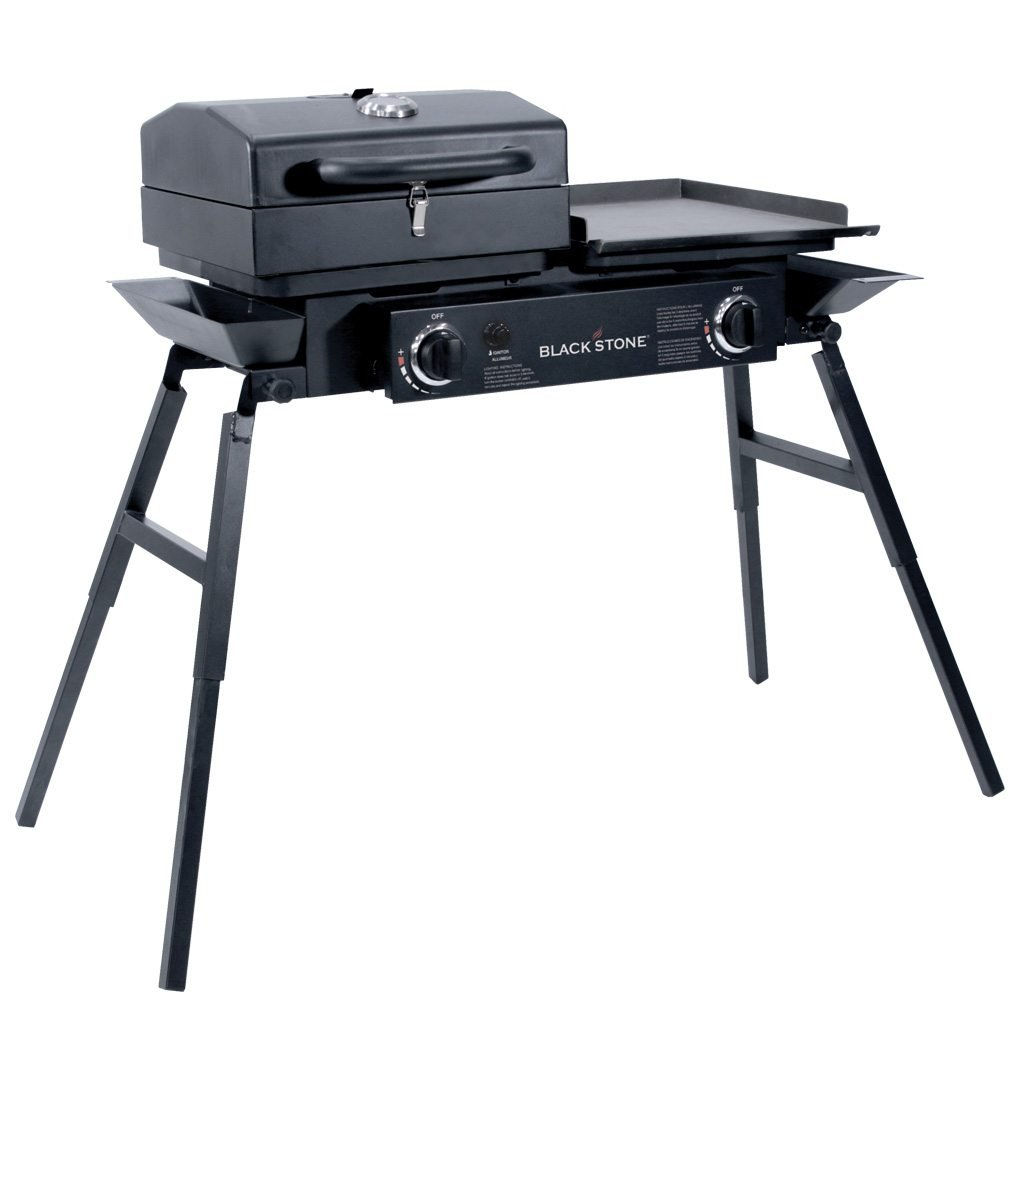 Blackstone Grills Tailgater - Portable Gas Grill and Griddle Combo - Barbecue Box - Two Open Burners – Griddle Top - Adjustable Legs - Camping Stove Great for Hunting, Fishing, Tailgating and More by Blackstone